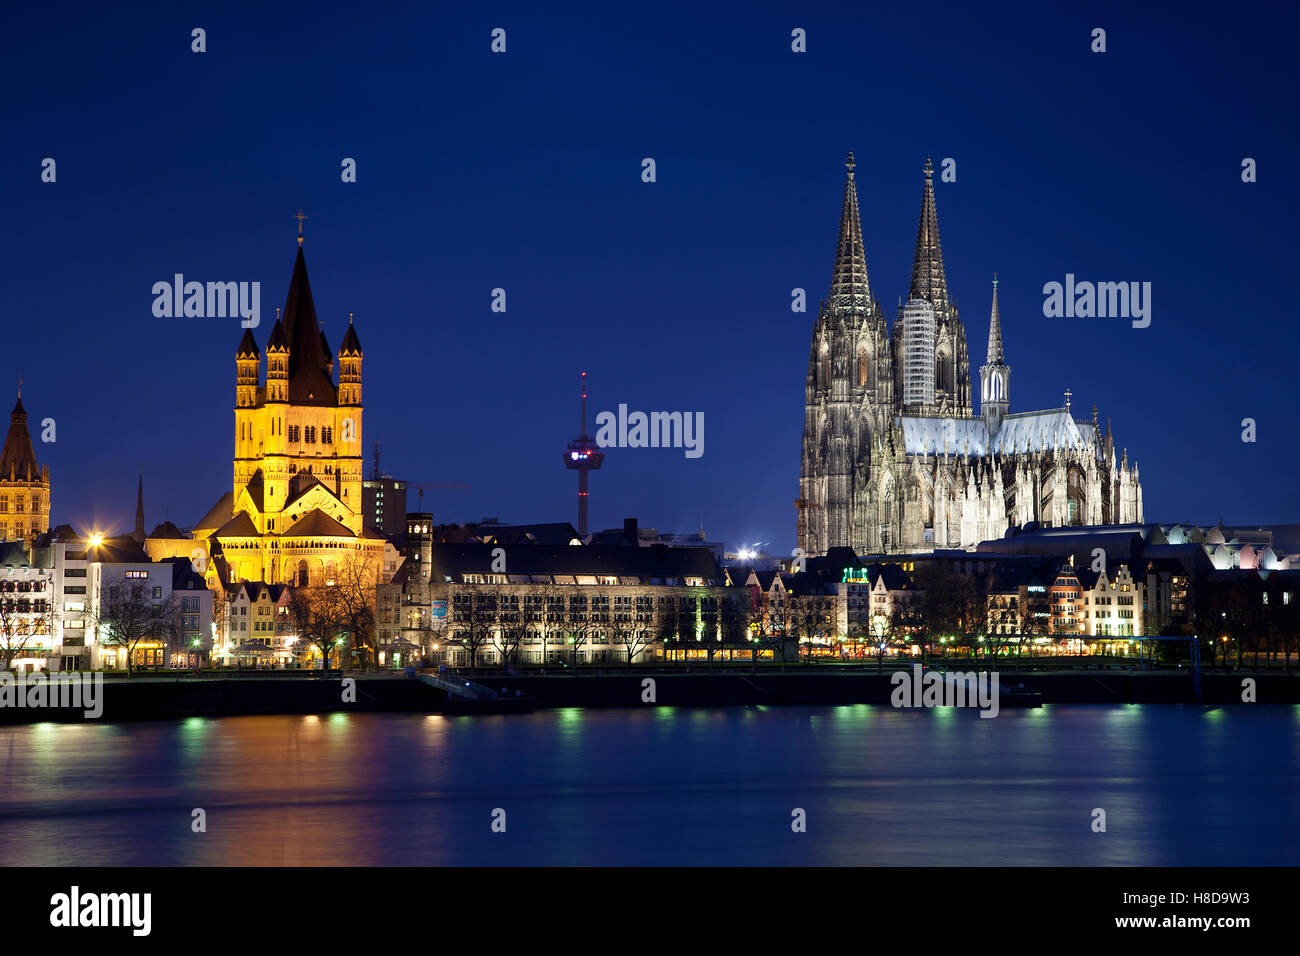 The Great Saint Martin Church and the Cologne Cathedral at night in Germany - Stock Image